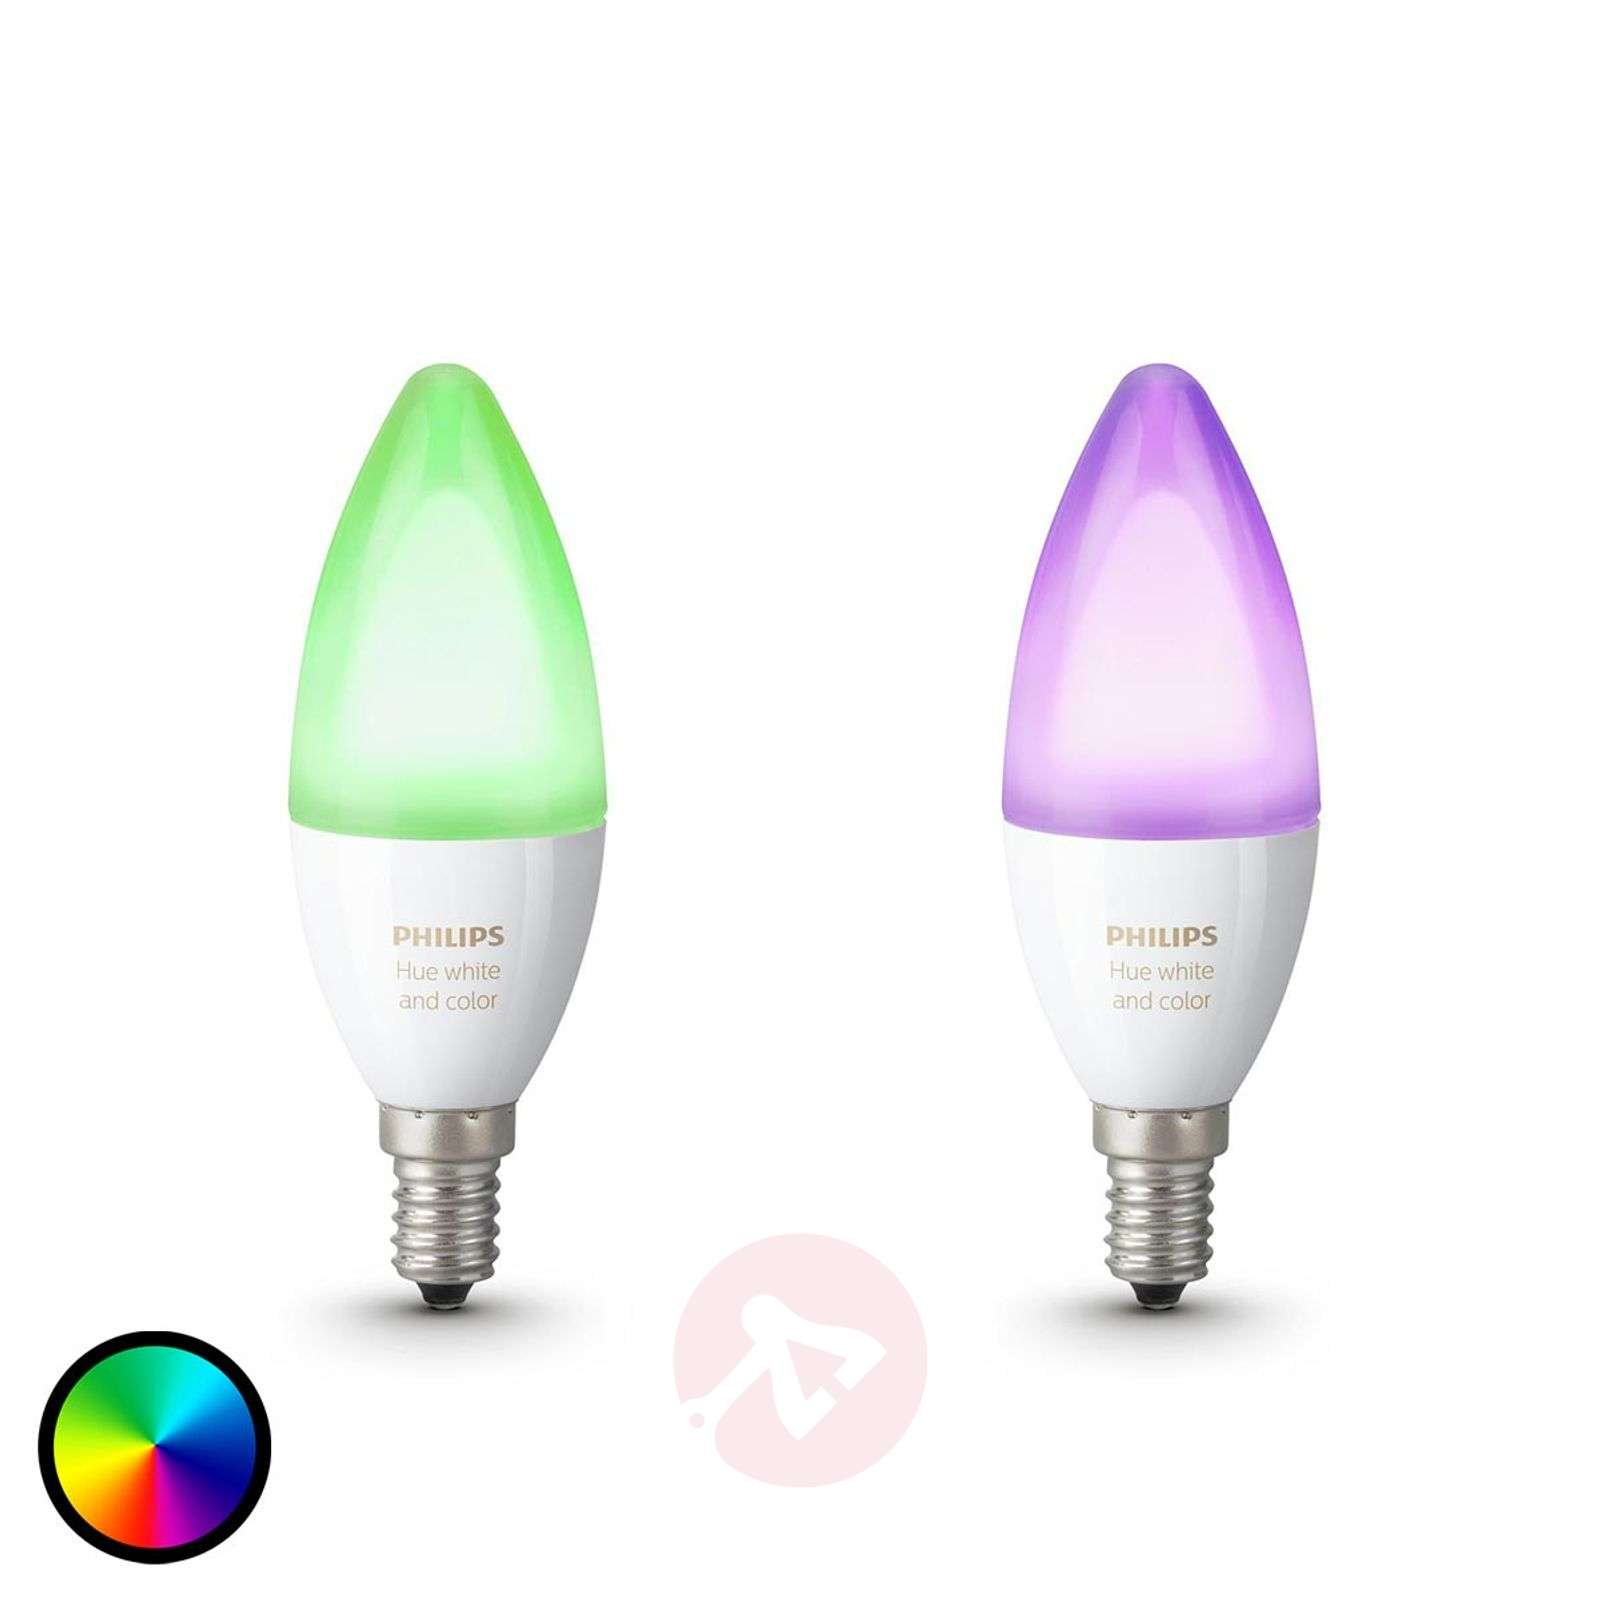 Philips Hue ampoule flamme RGBW E14 6,5 W lot de 2-7532033-01